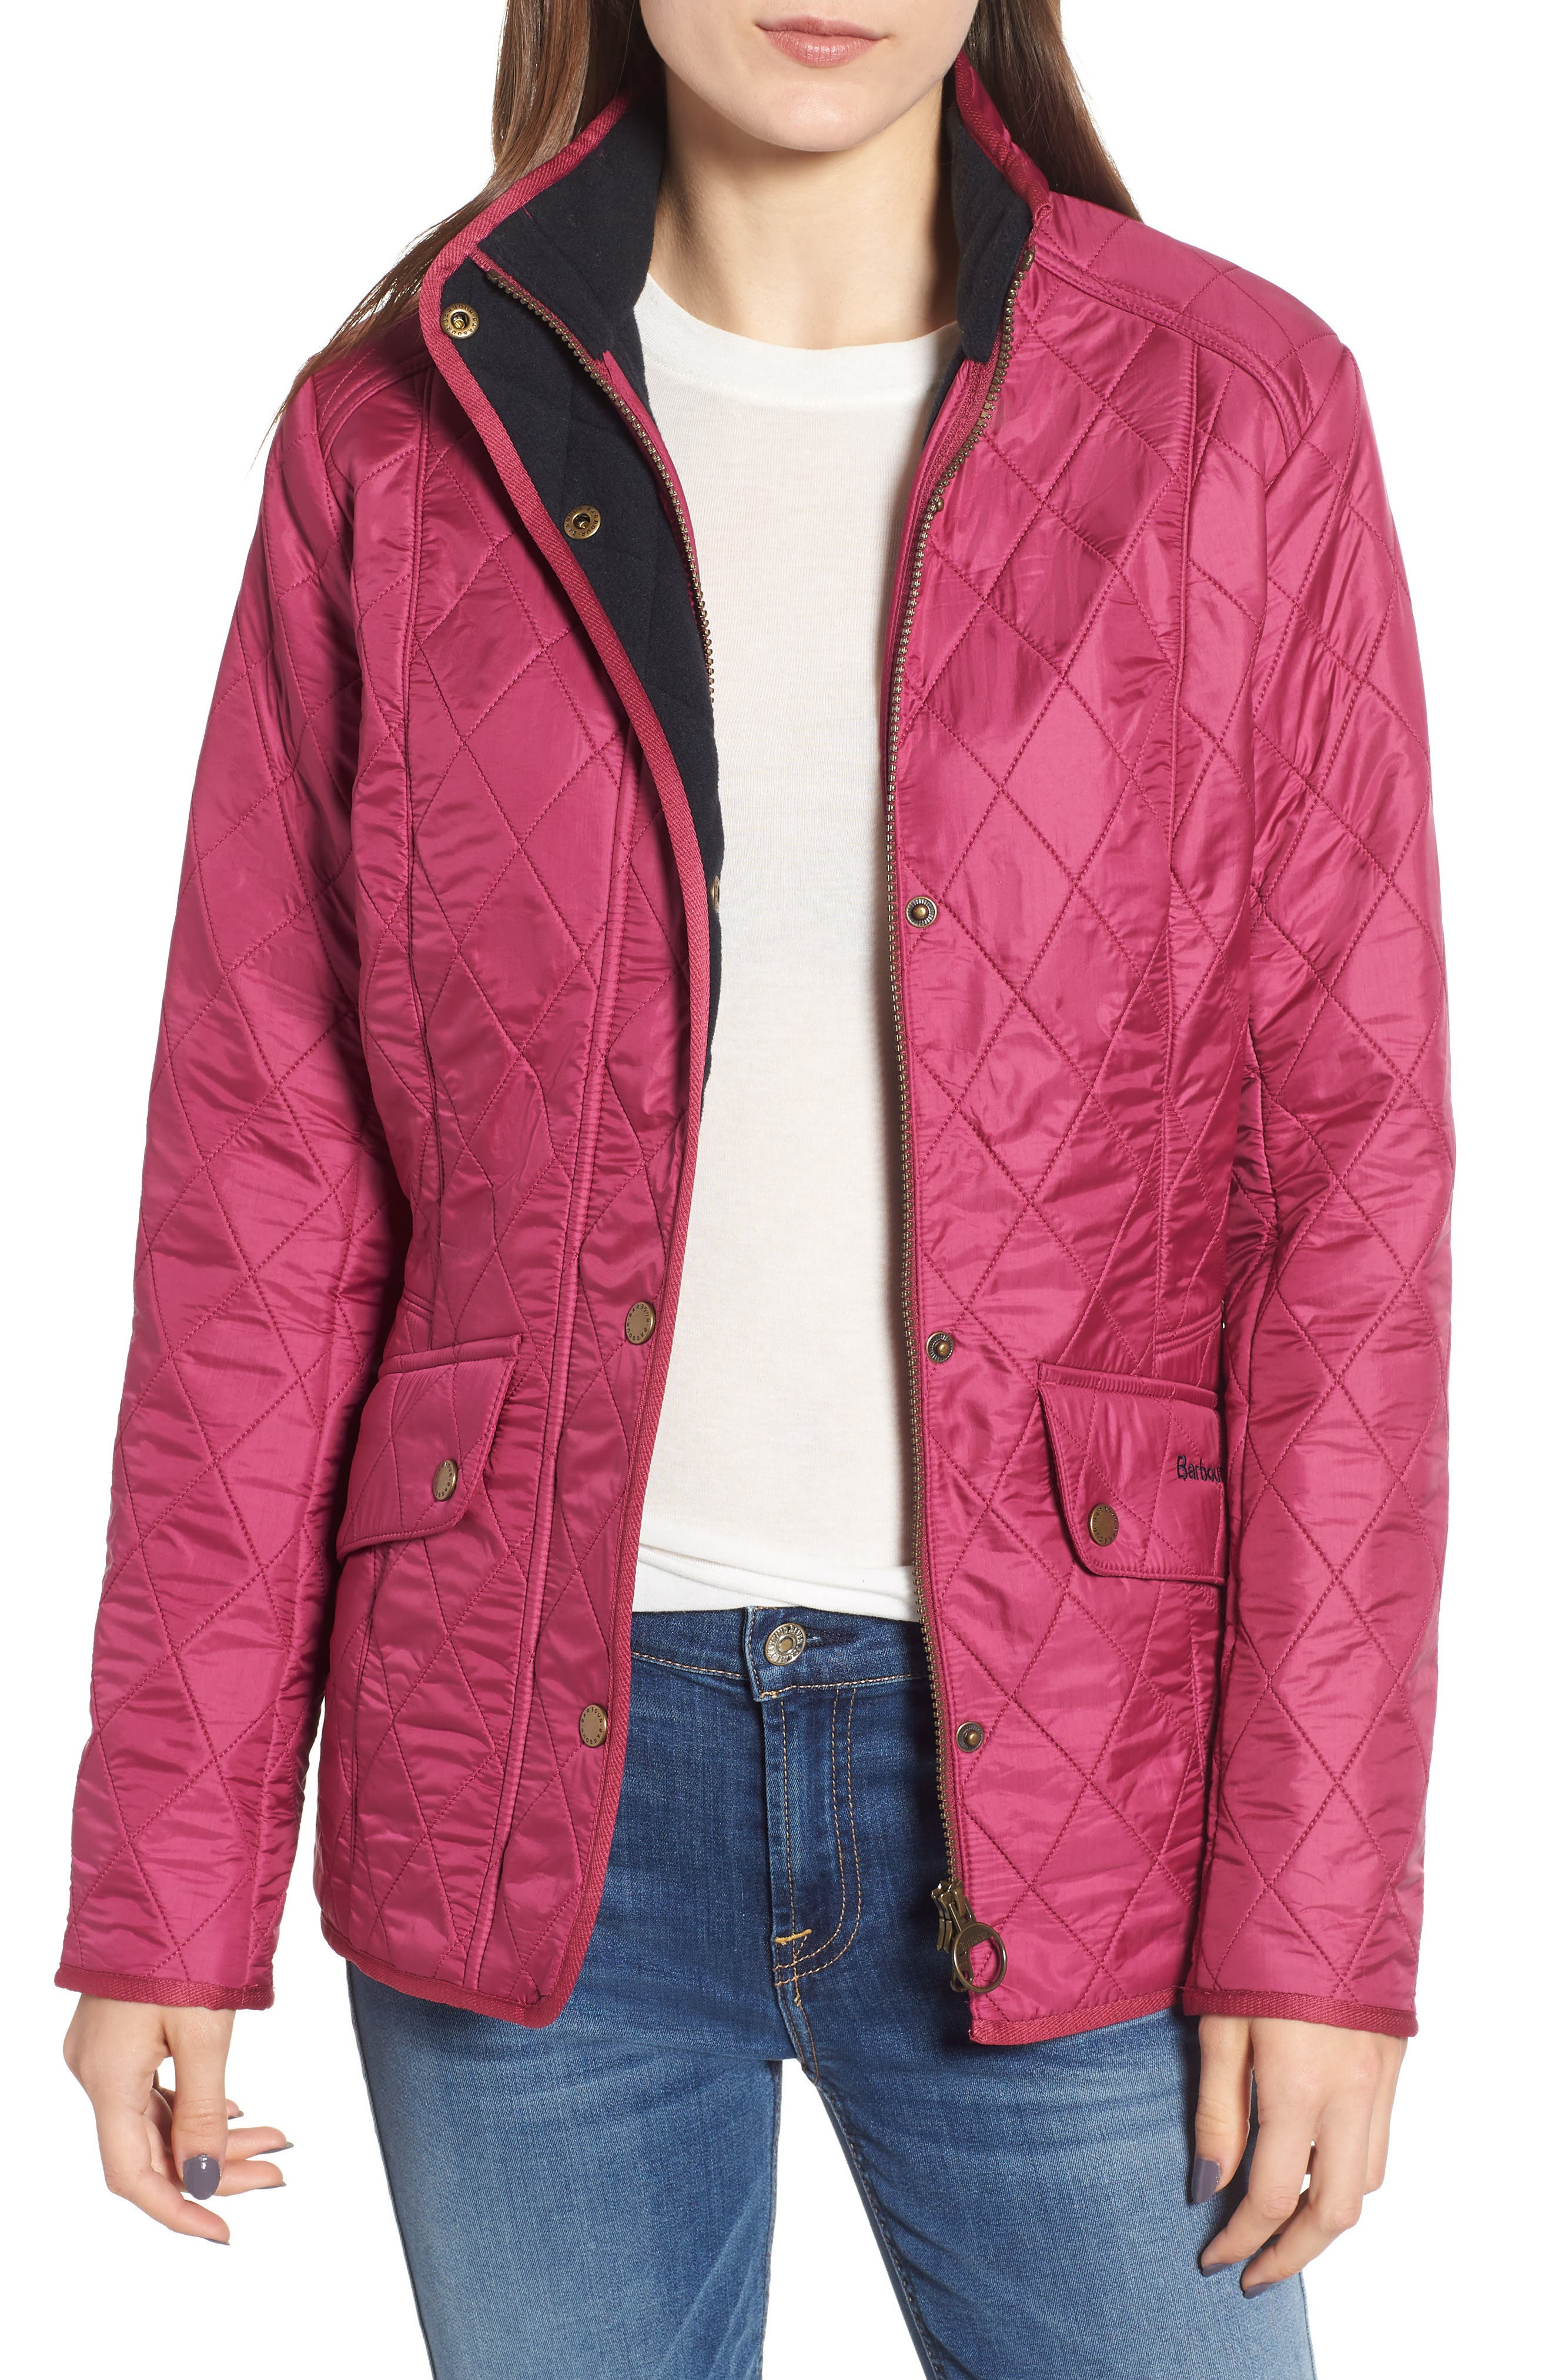 'Cavalry' Quilted Jacket,                             Main thumbnail 1, color,                             BERRY PINK / NAVY